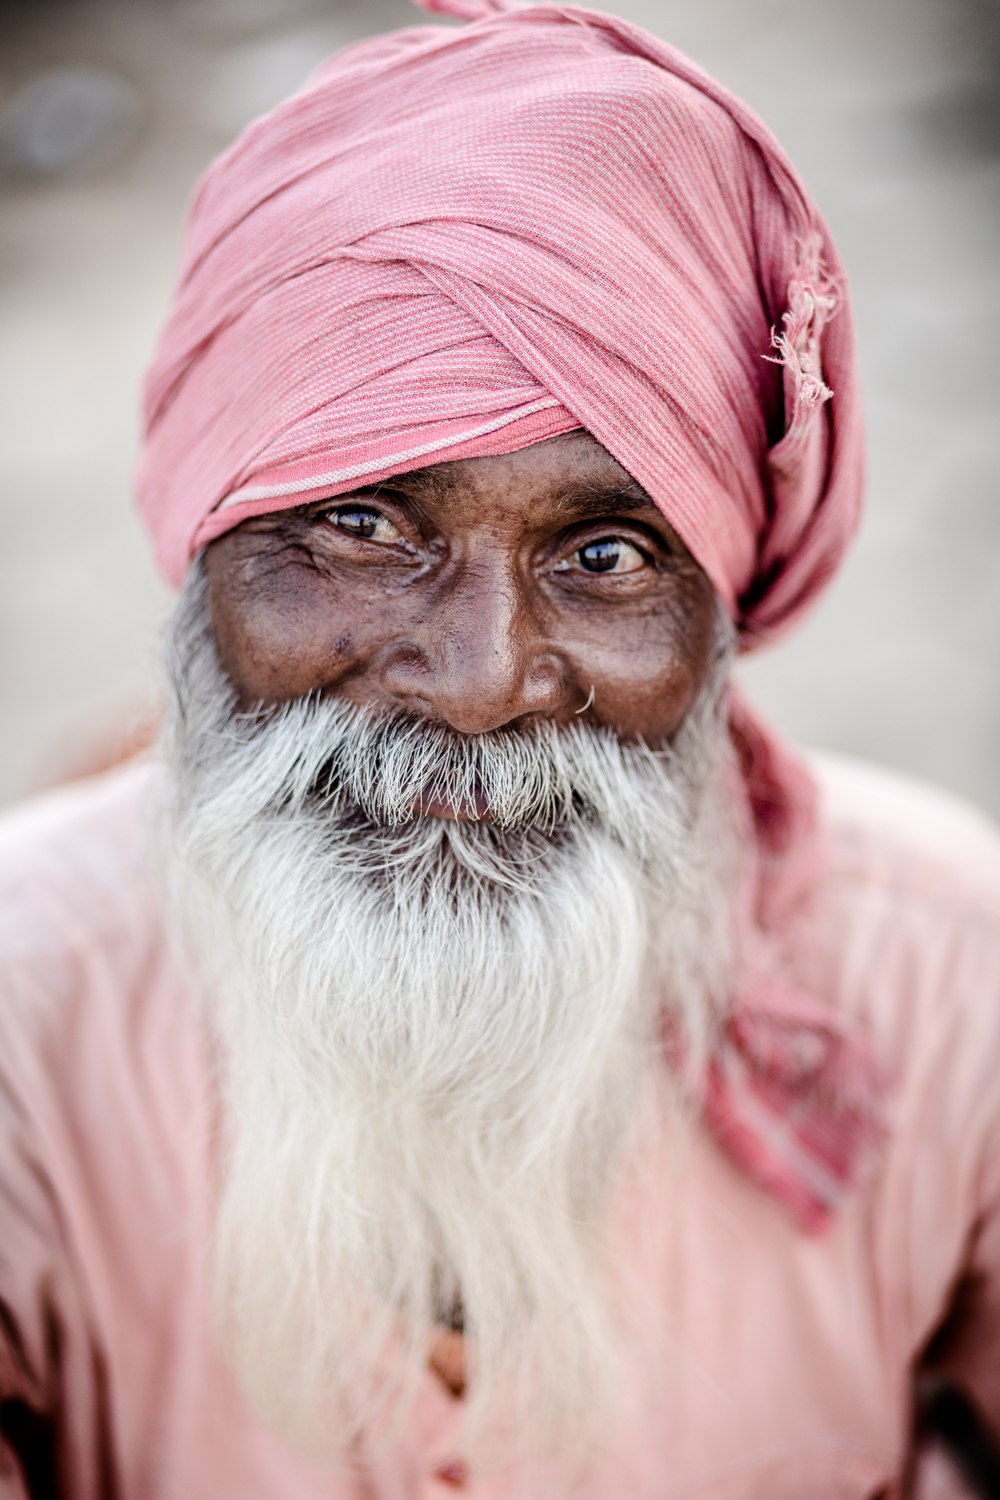 Pink Baba at Kumbh Mela in Ujjain. Kumbh Mela is a Hindu pilgramage festival held once every 12 years at a given site, drew an estimated 70 million visitors to the city of Ujjain in 2016.